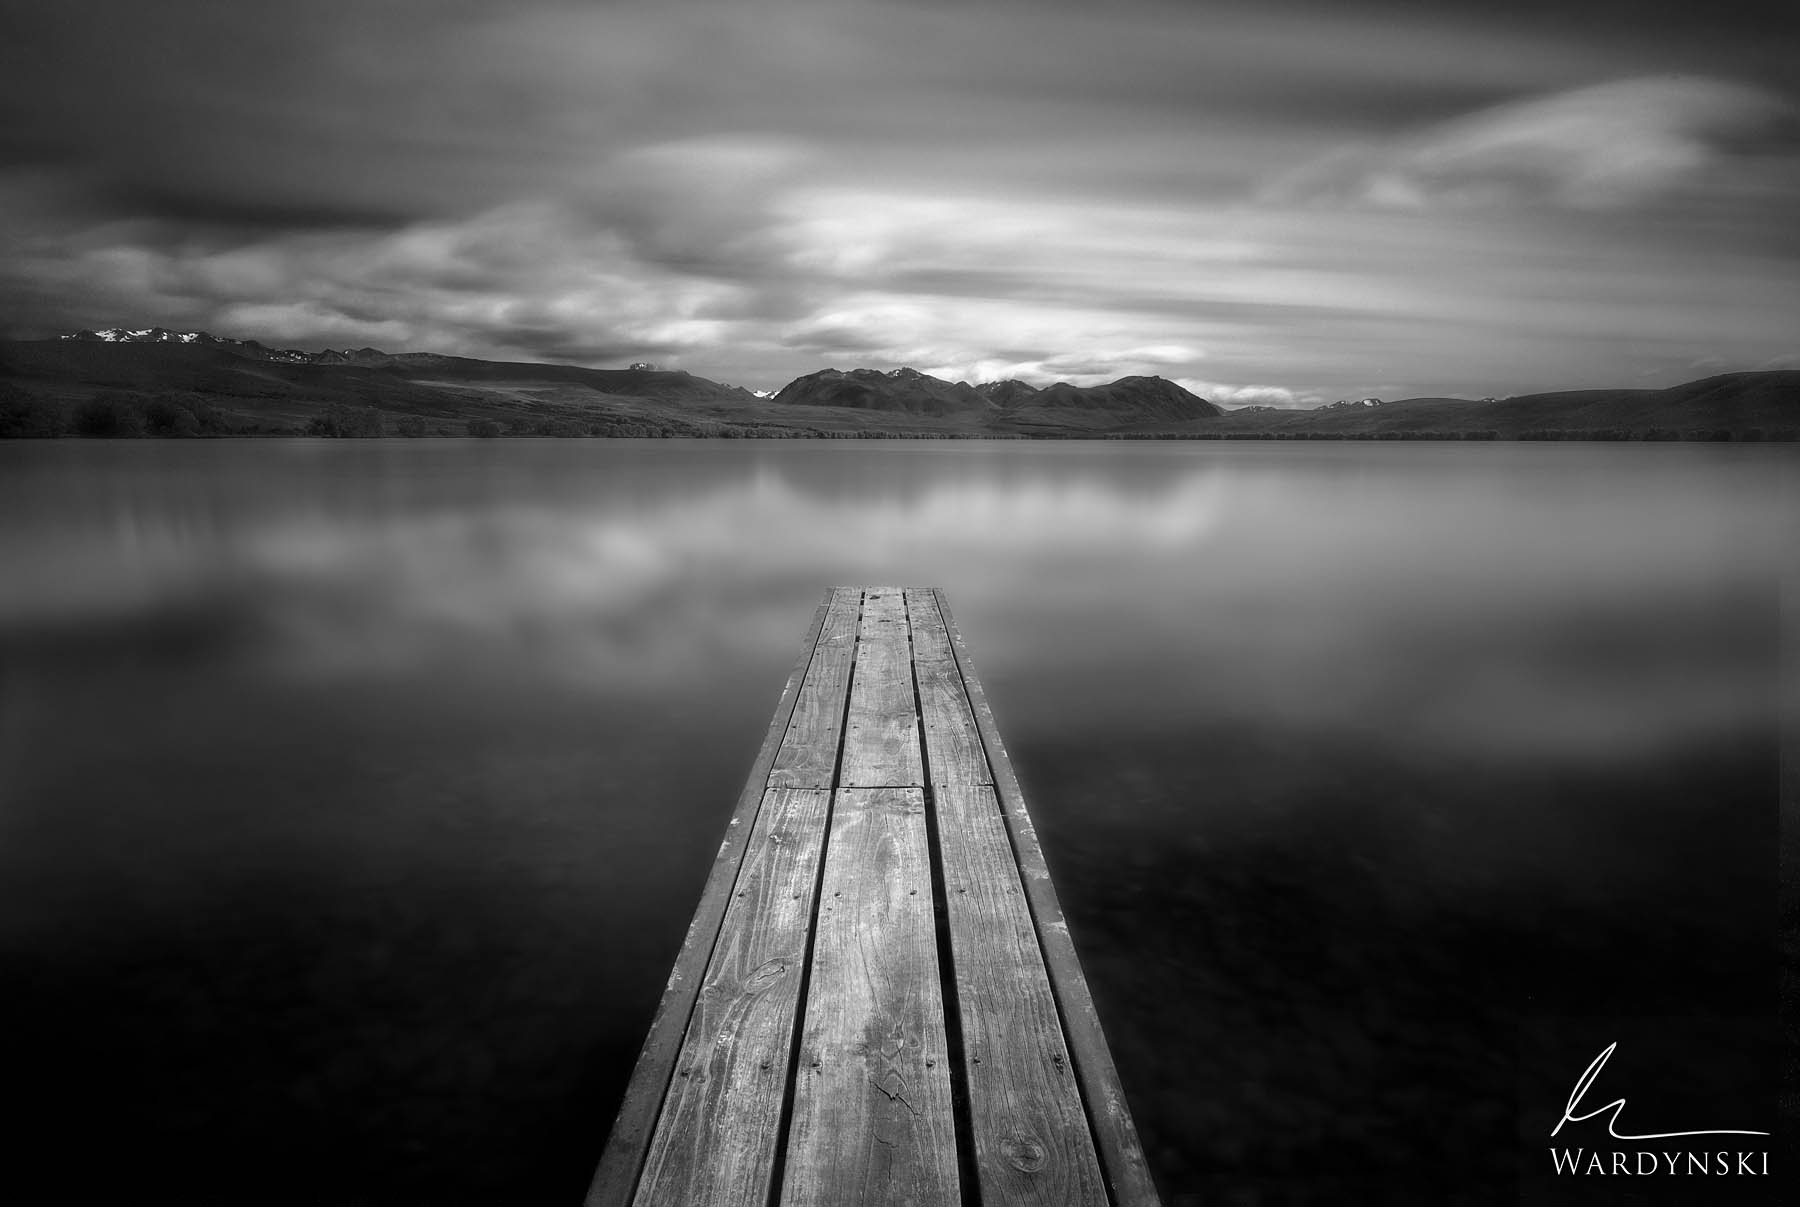 Black and White Fine Art Print | Limited Edition of 50  Have you ever gotten lost in a daydream while soaking your feet in the...